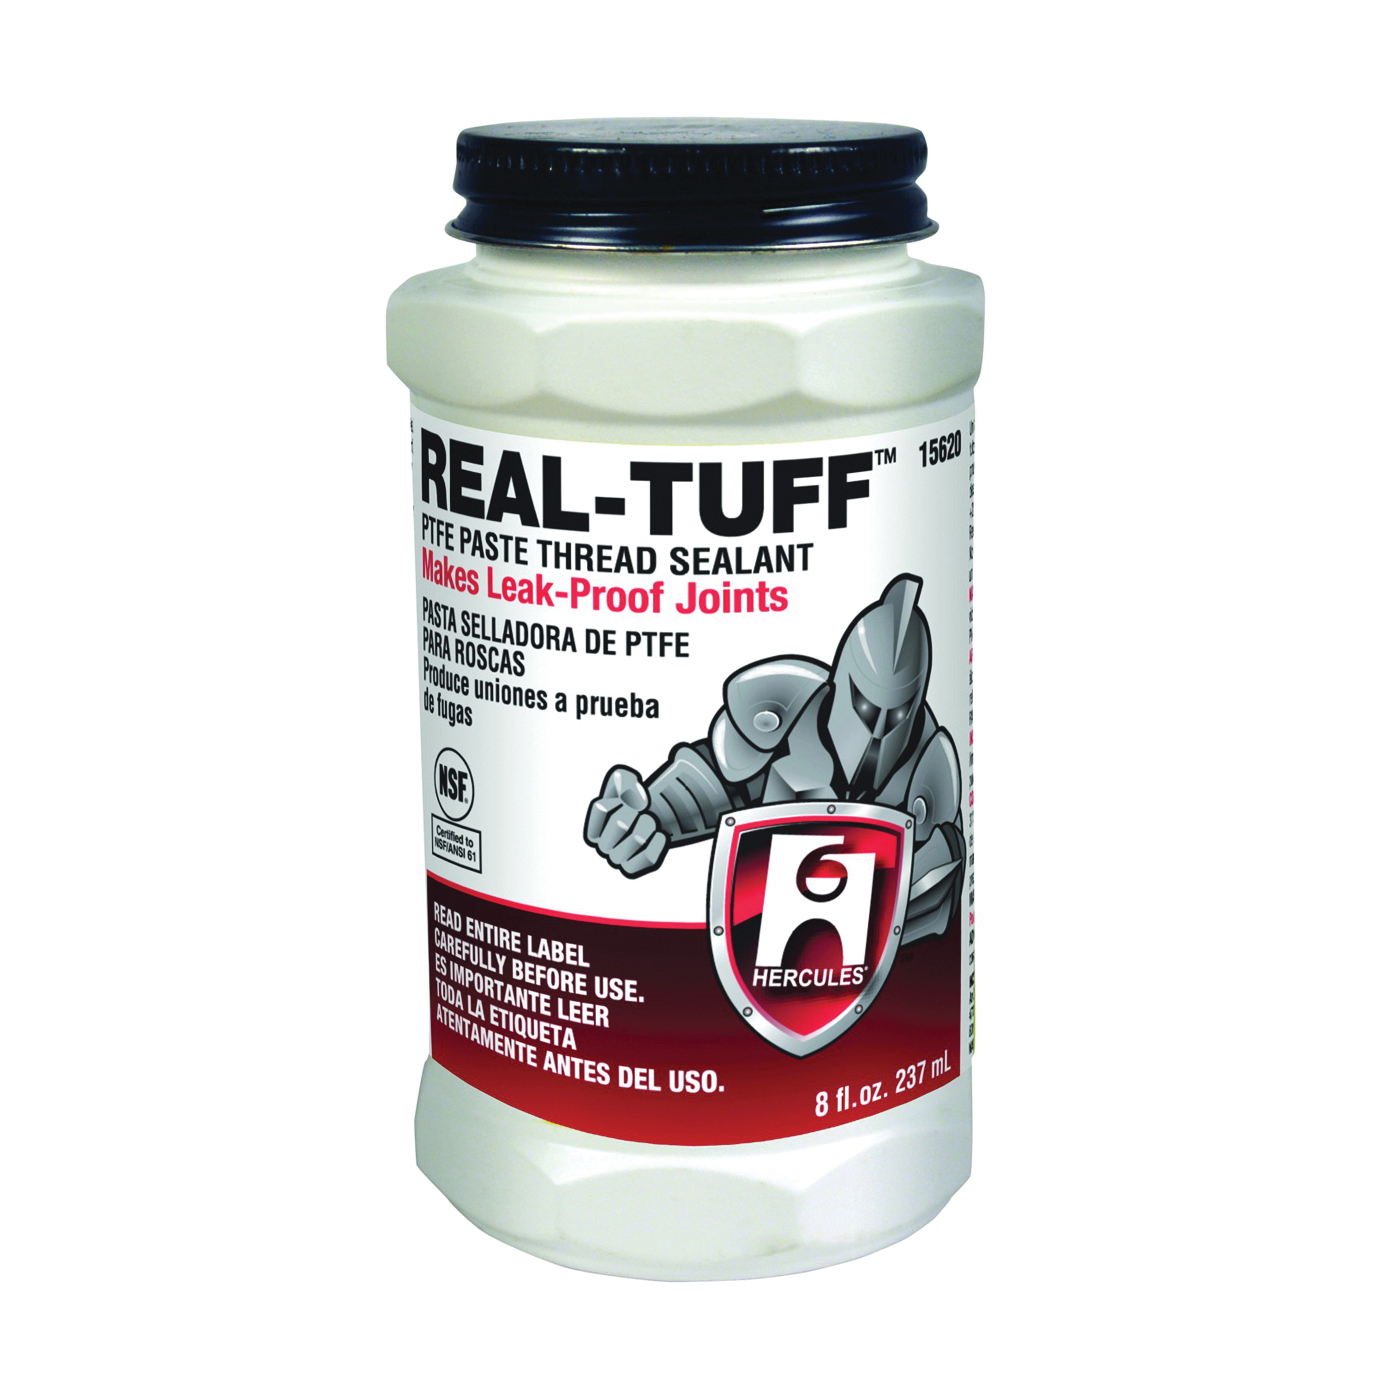 Picture of Oatey REAL TUFF 15615 Thread Sealant, 4 oz, Can, Paste, White